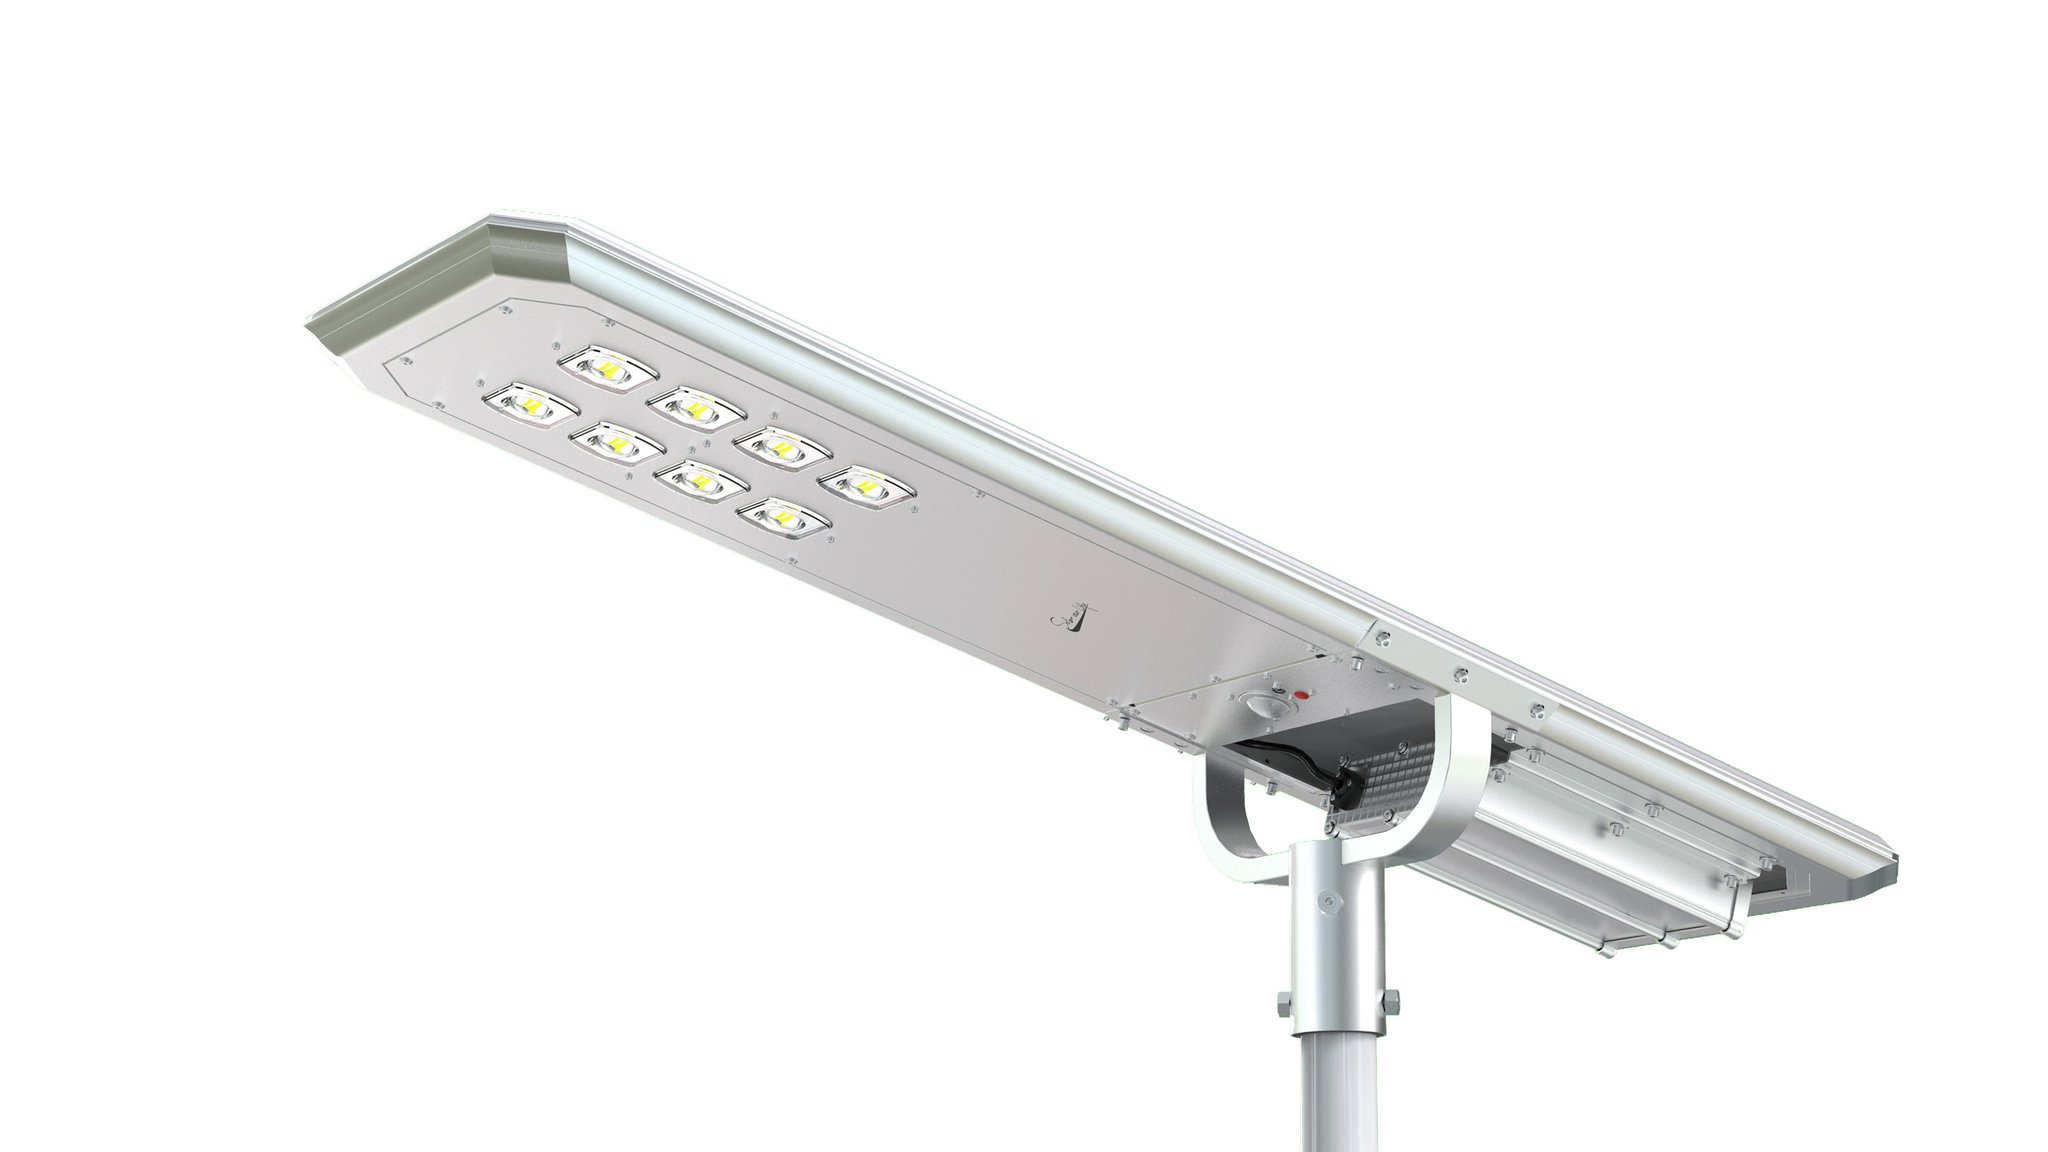 7000 LUMEN SOLAR LED STREET / POLE LIGHT.